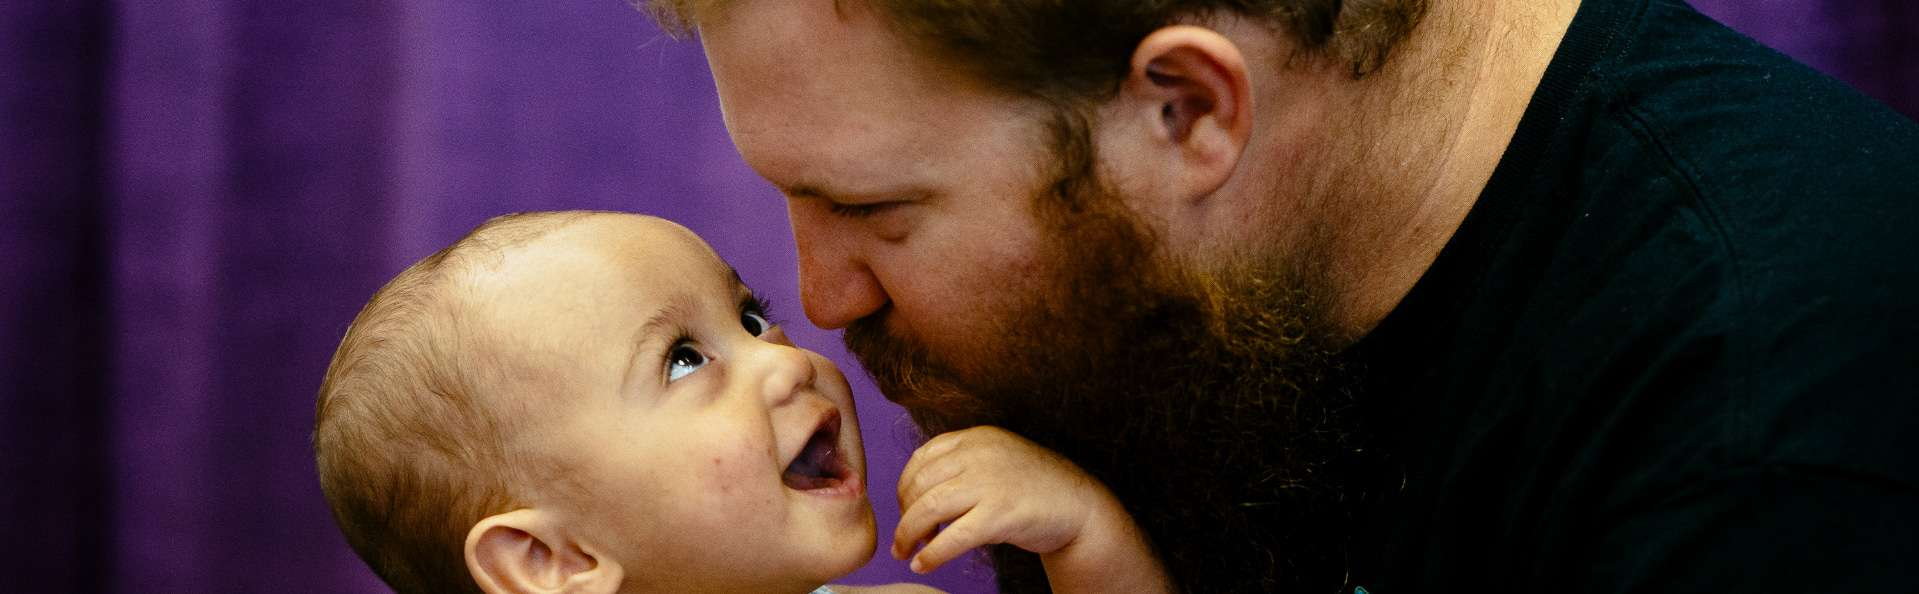 Baby and father enjoy their connection during a therapy session